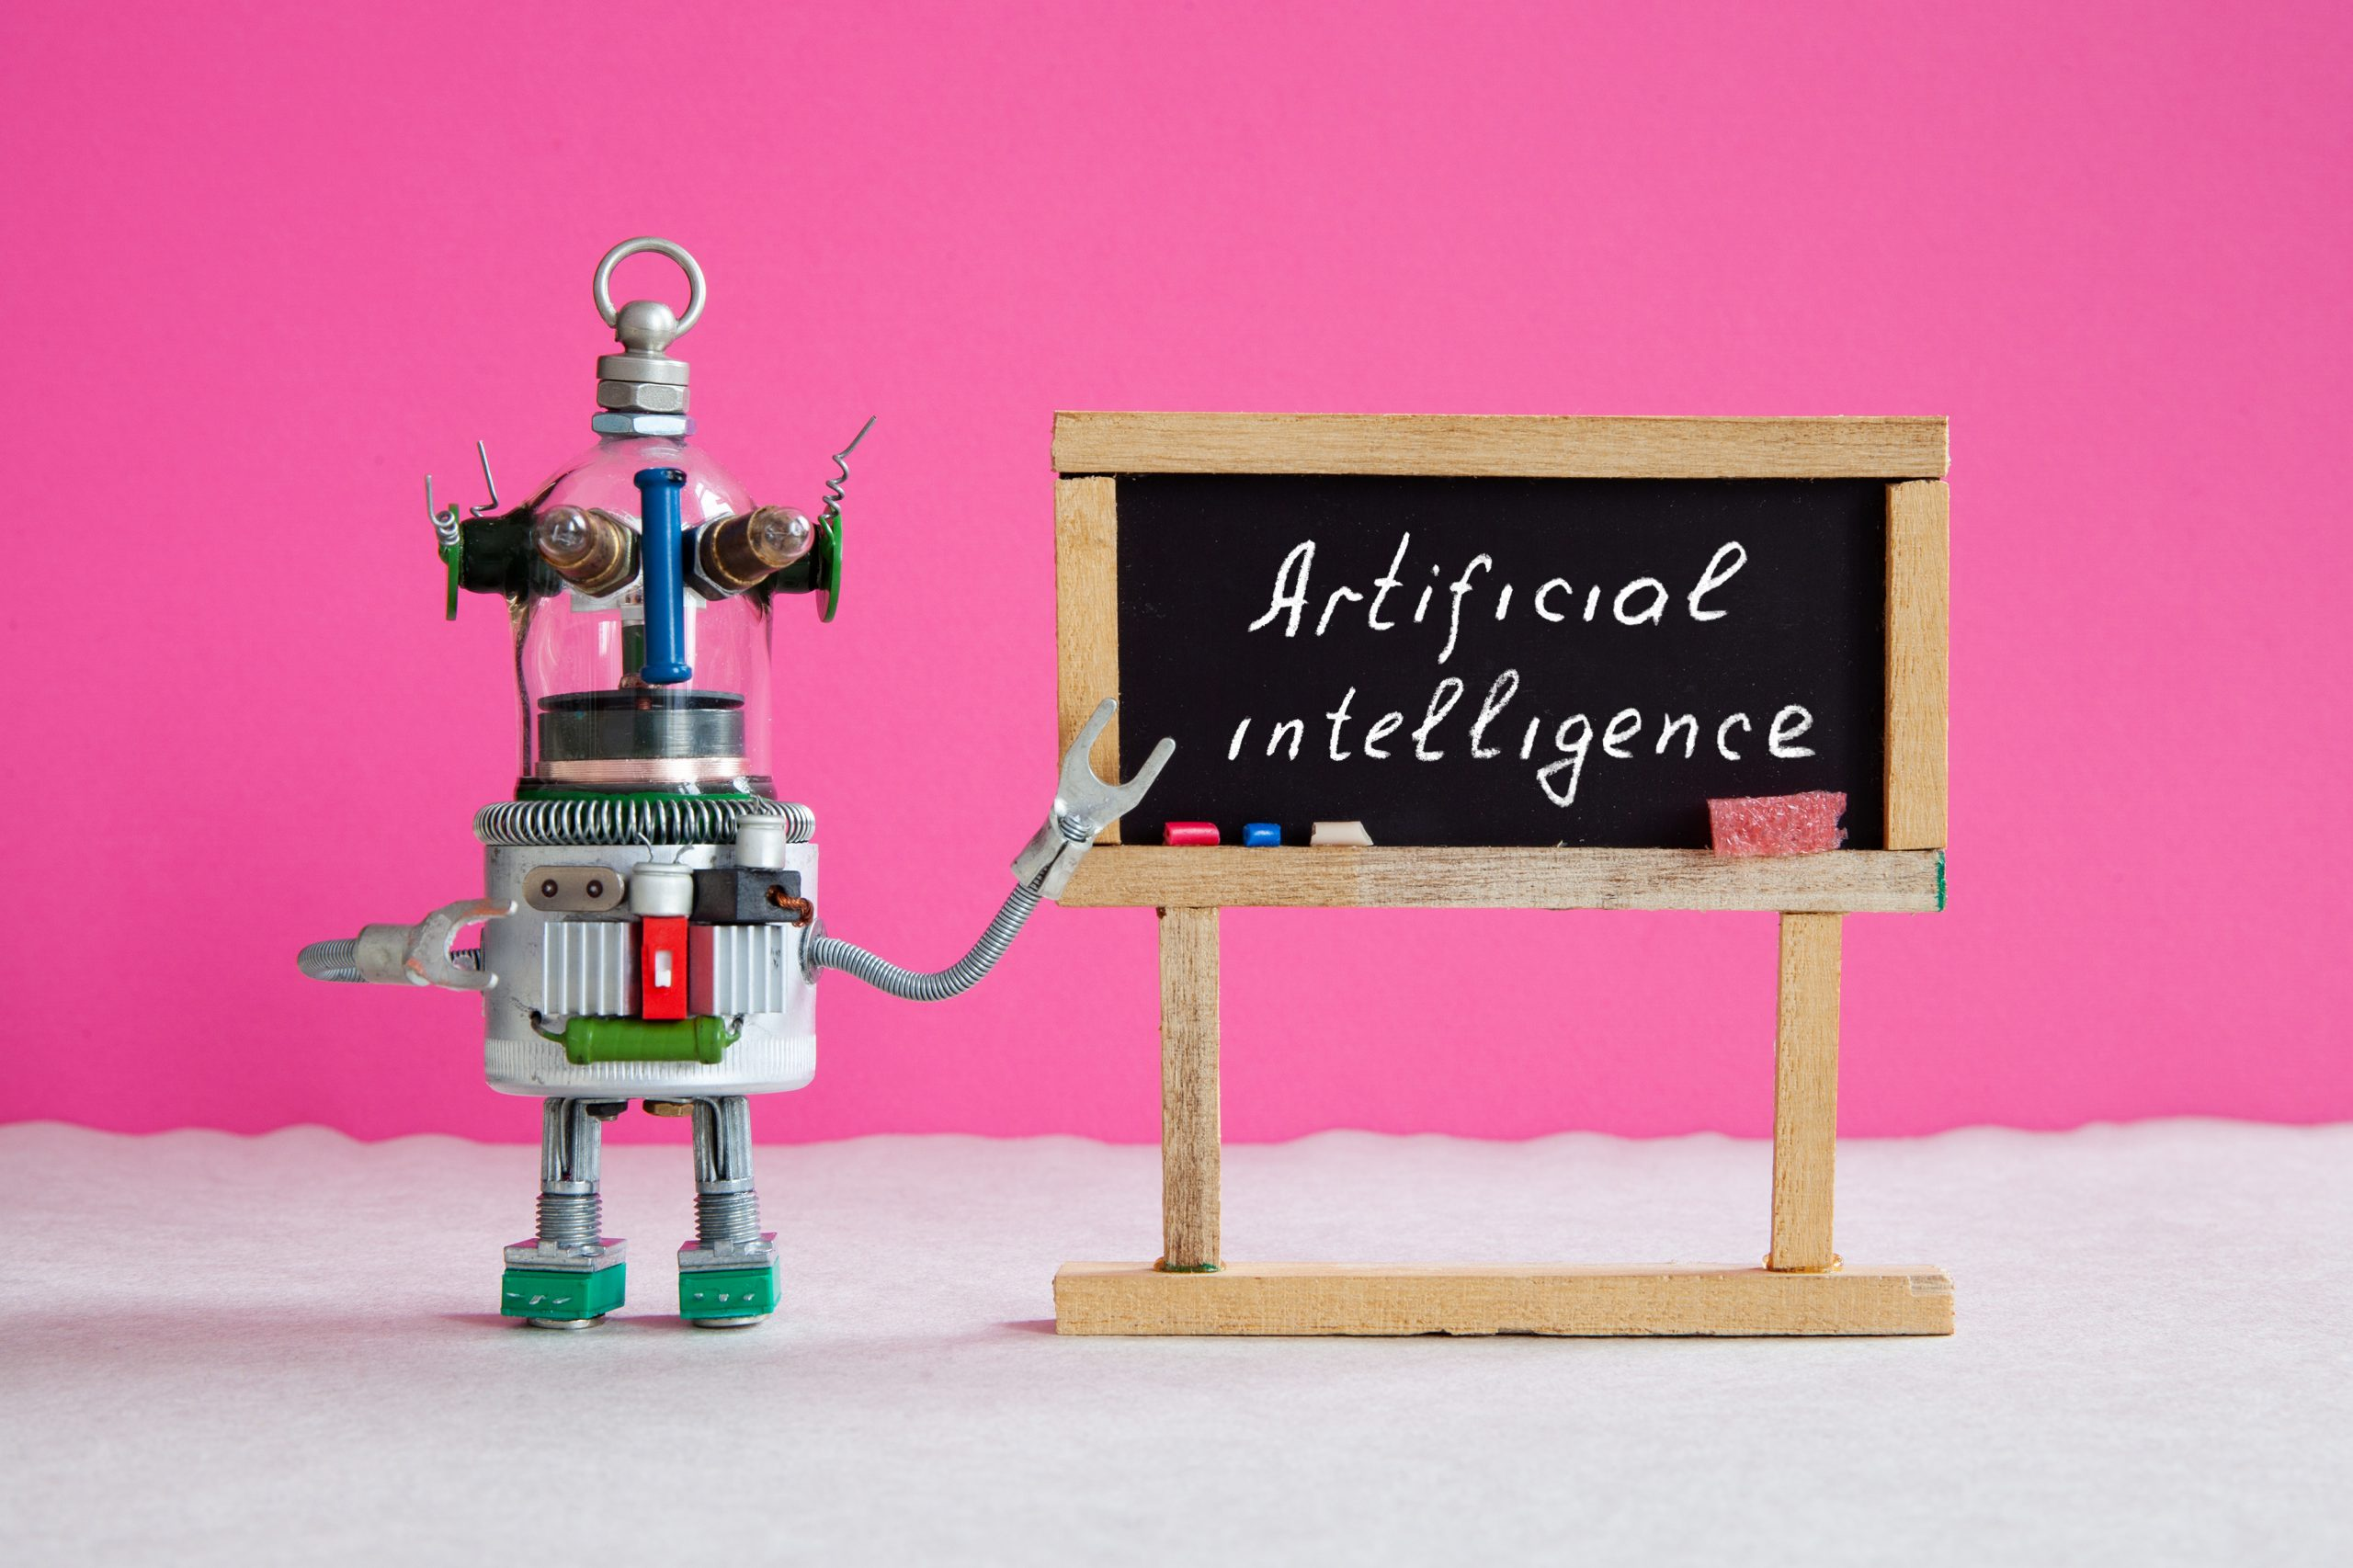 artificial intelligence and machine learning conce GCRWTZA scaled